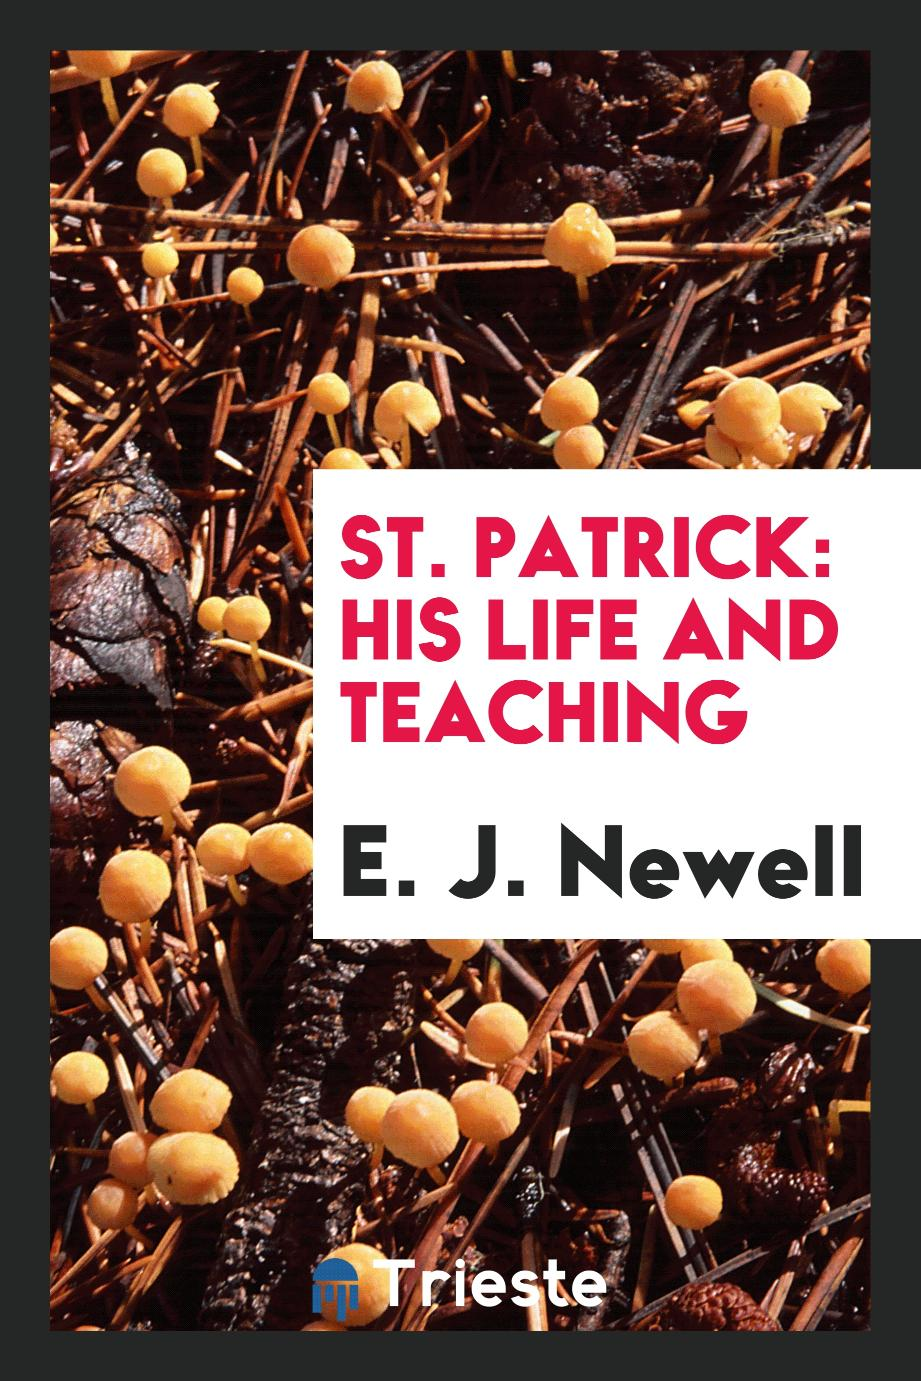 St. Patrick: his life and teaching